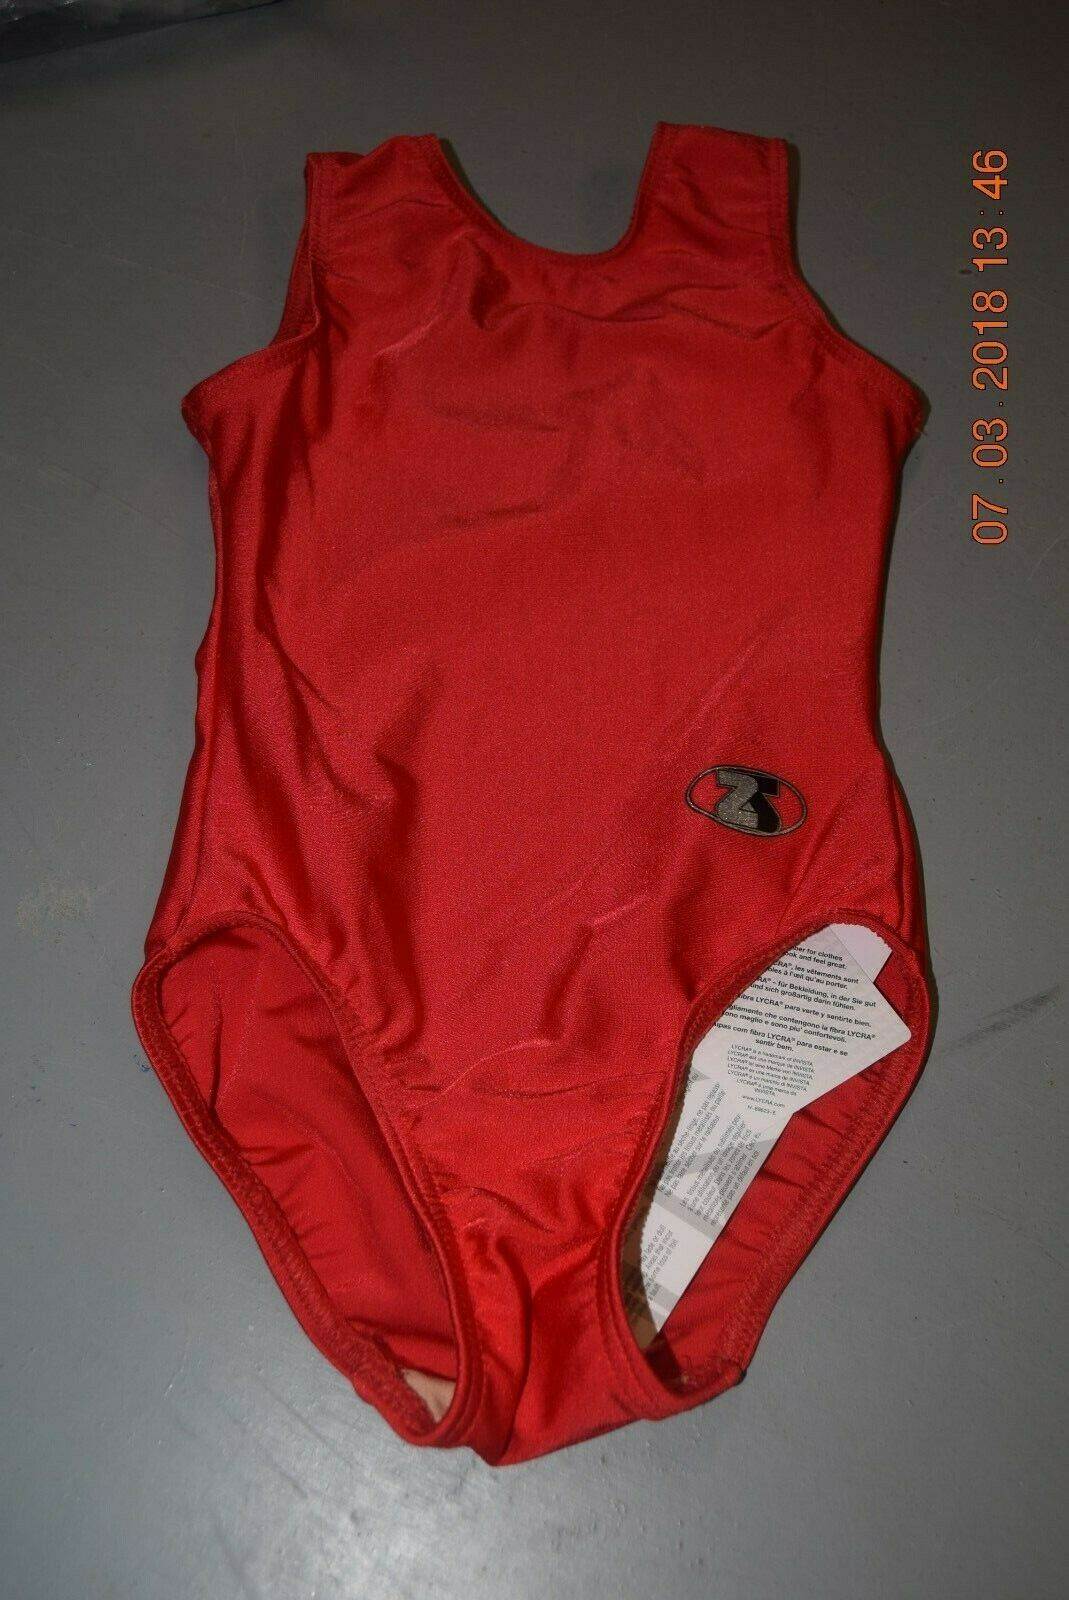 Red The zone CADENCE sleeveless lycra leotard - assorted sizes